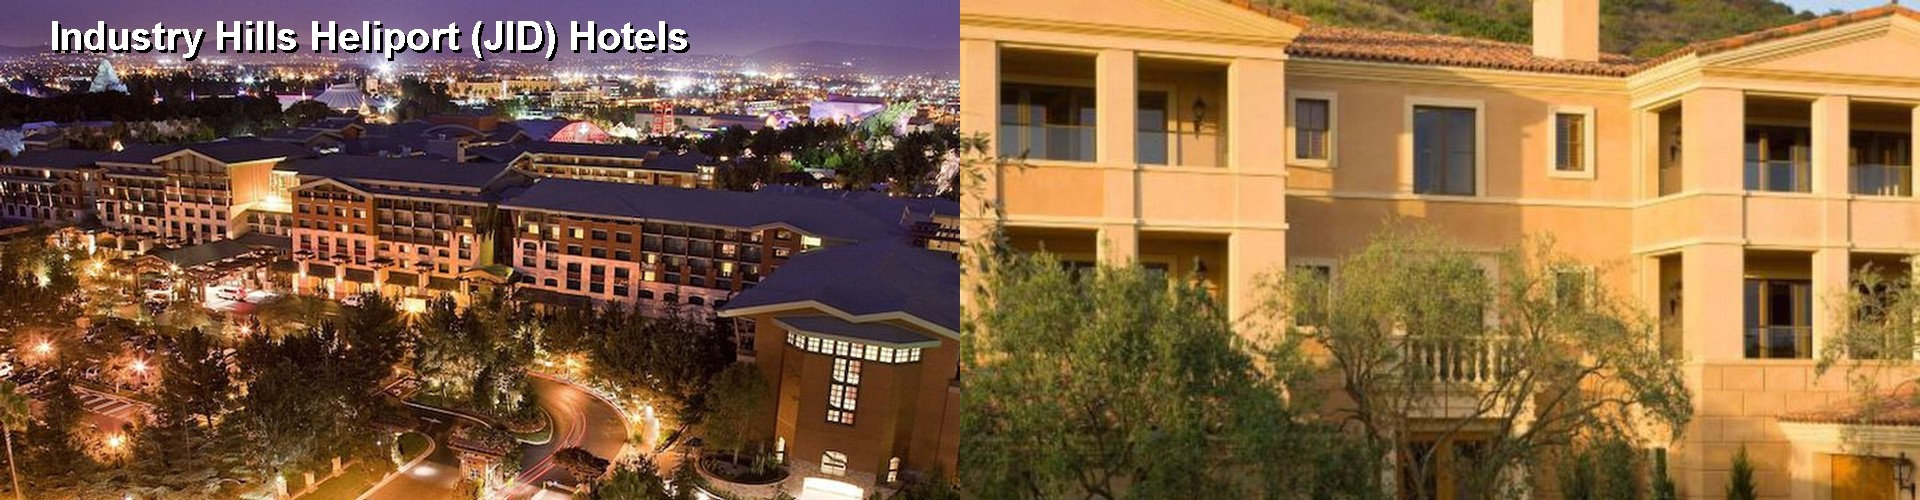 5 Best Hotels near Industry Hills Heliport (JID)